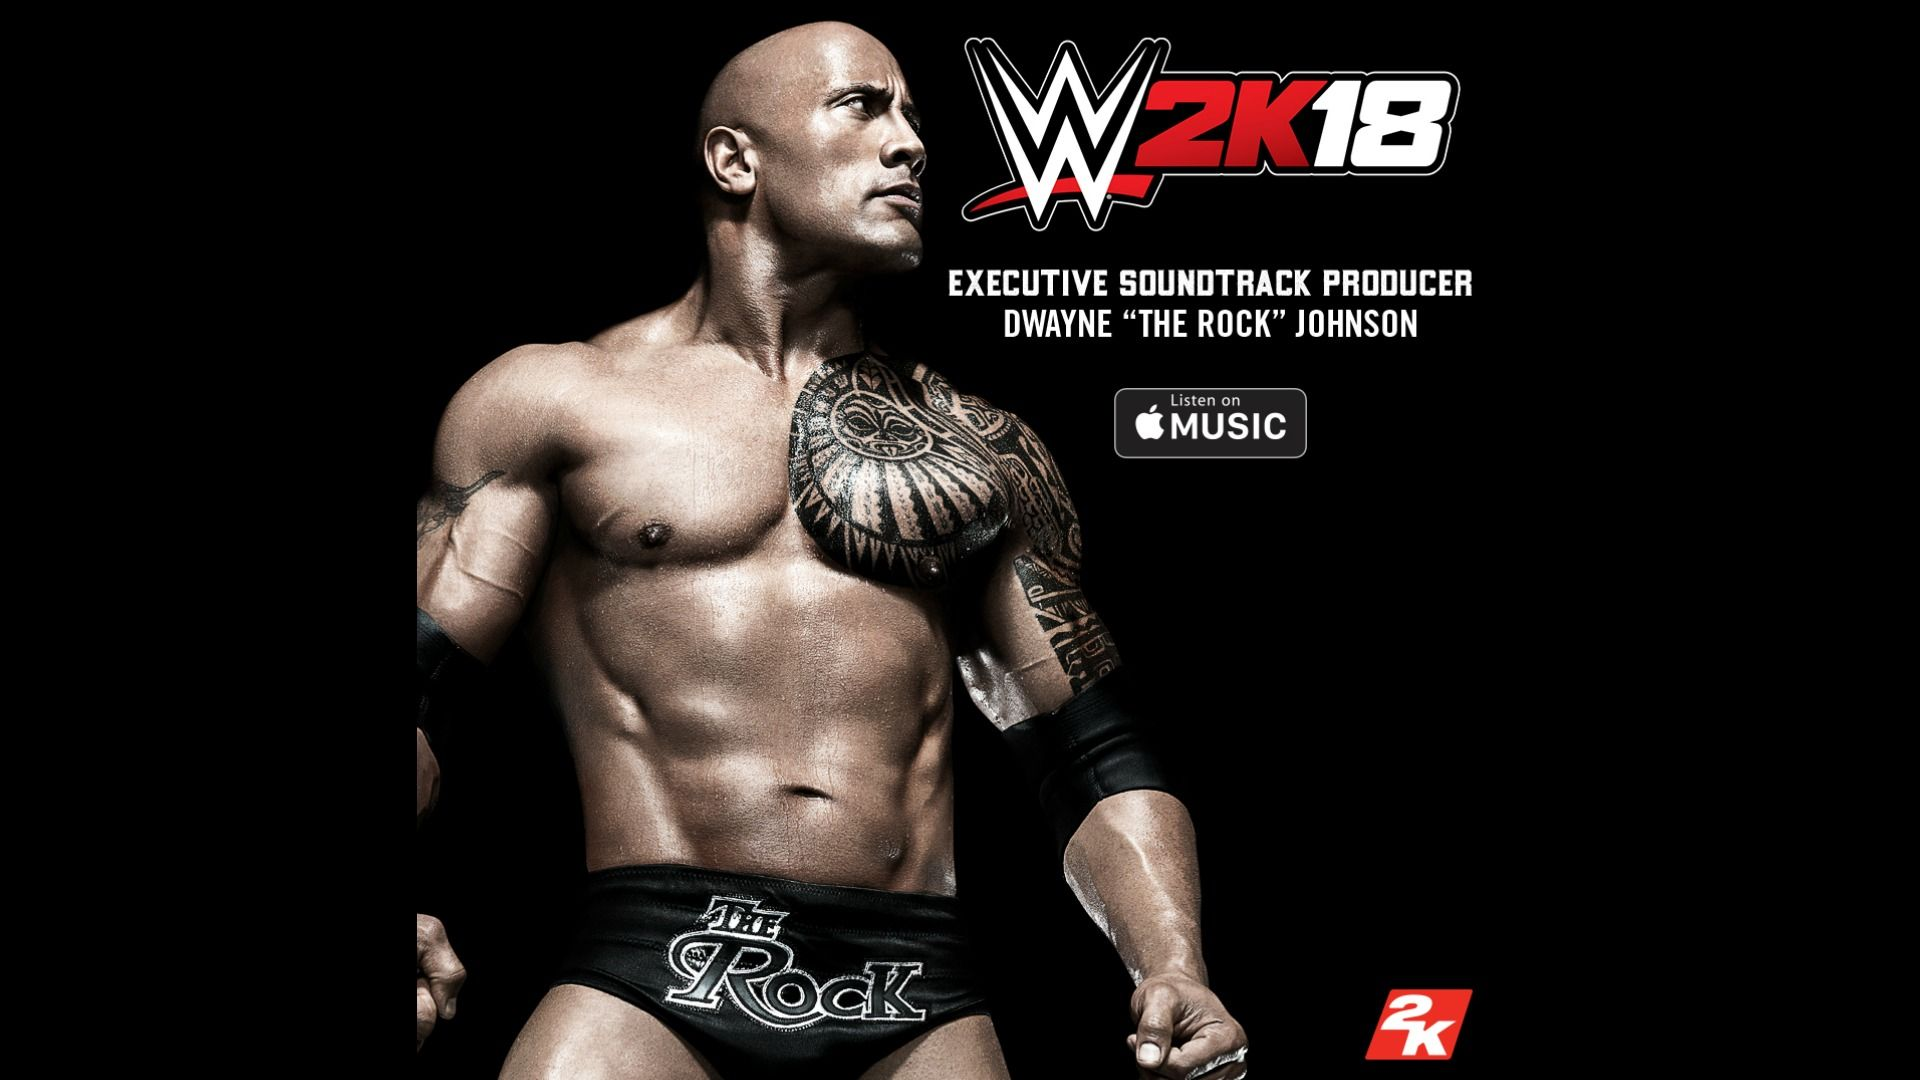 wwe 2k news dwayne the rock johnson is executive soundtrack